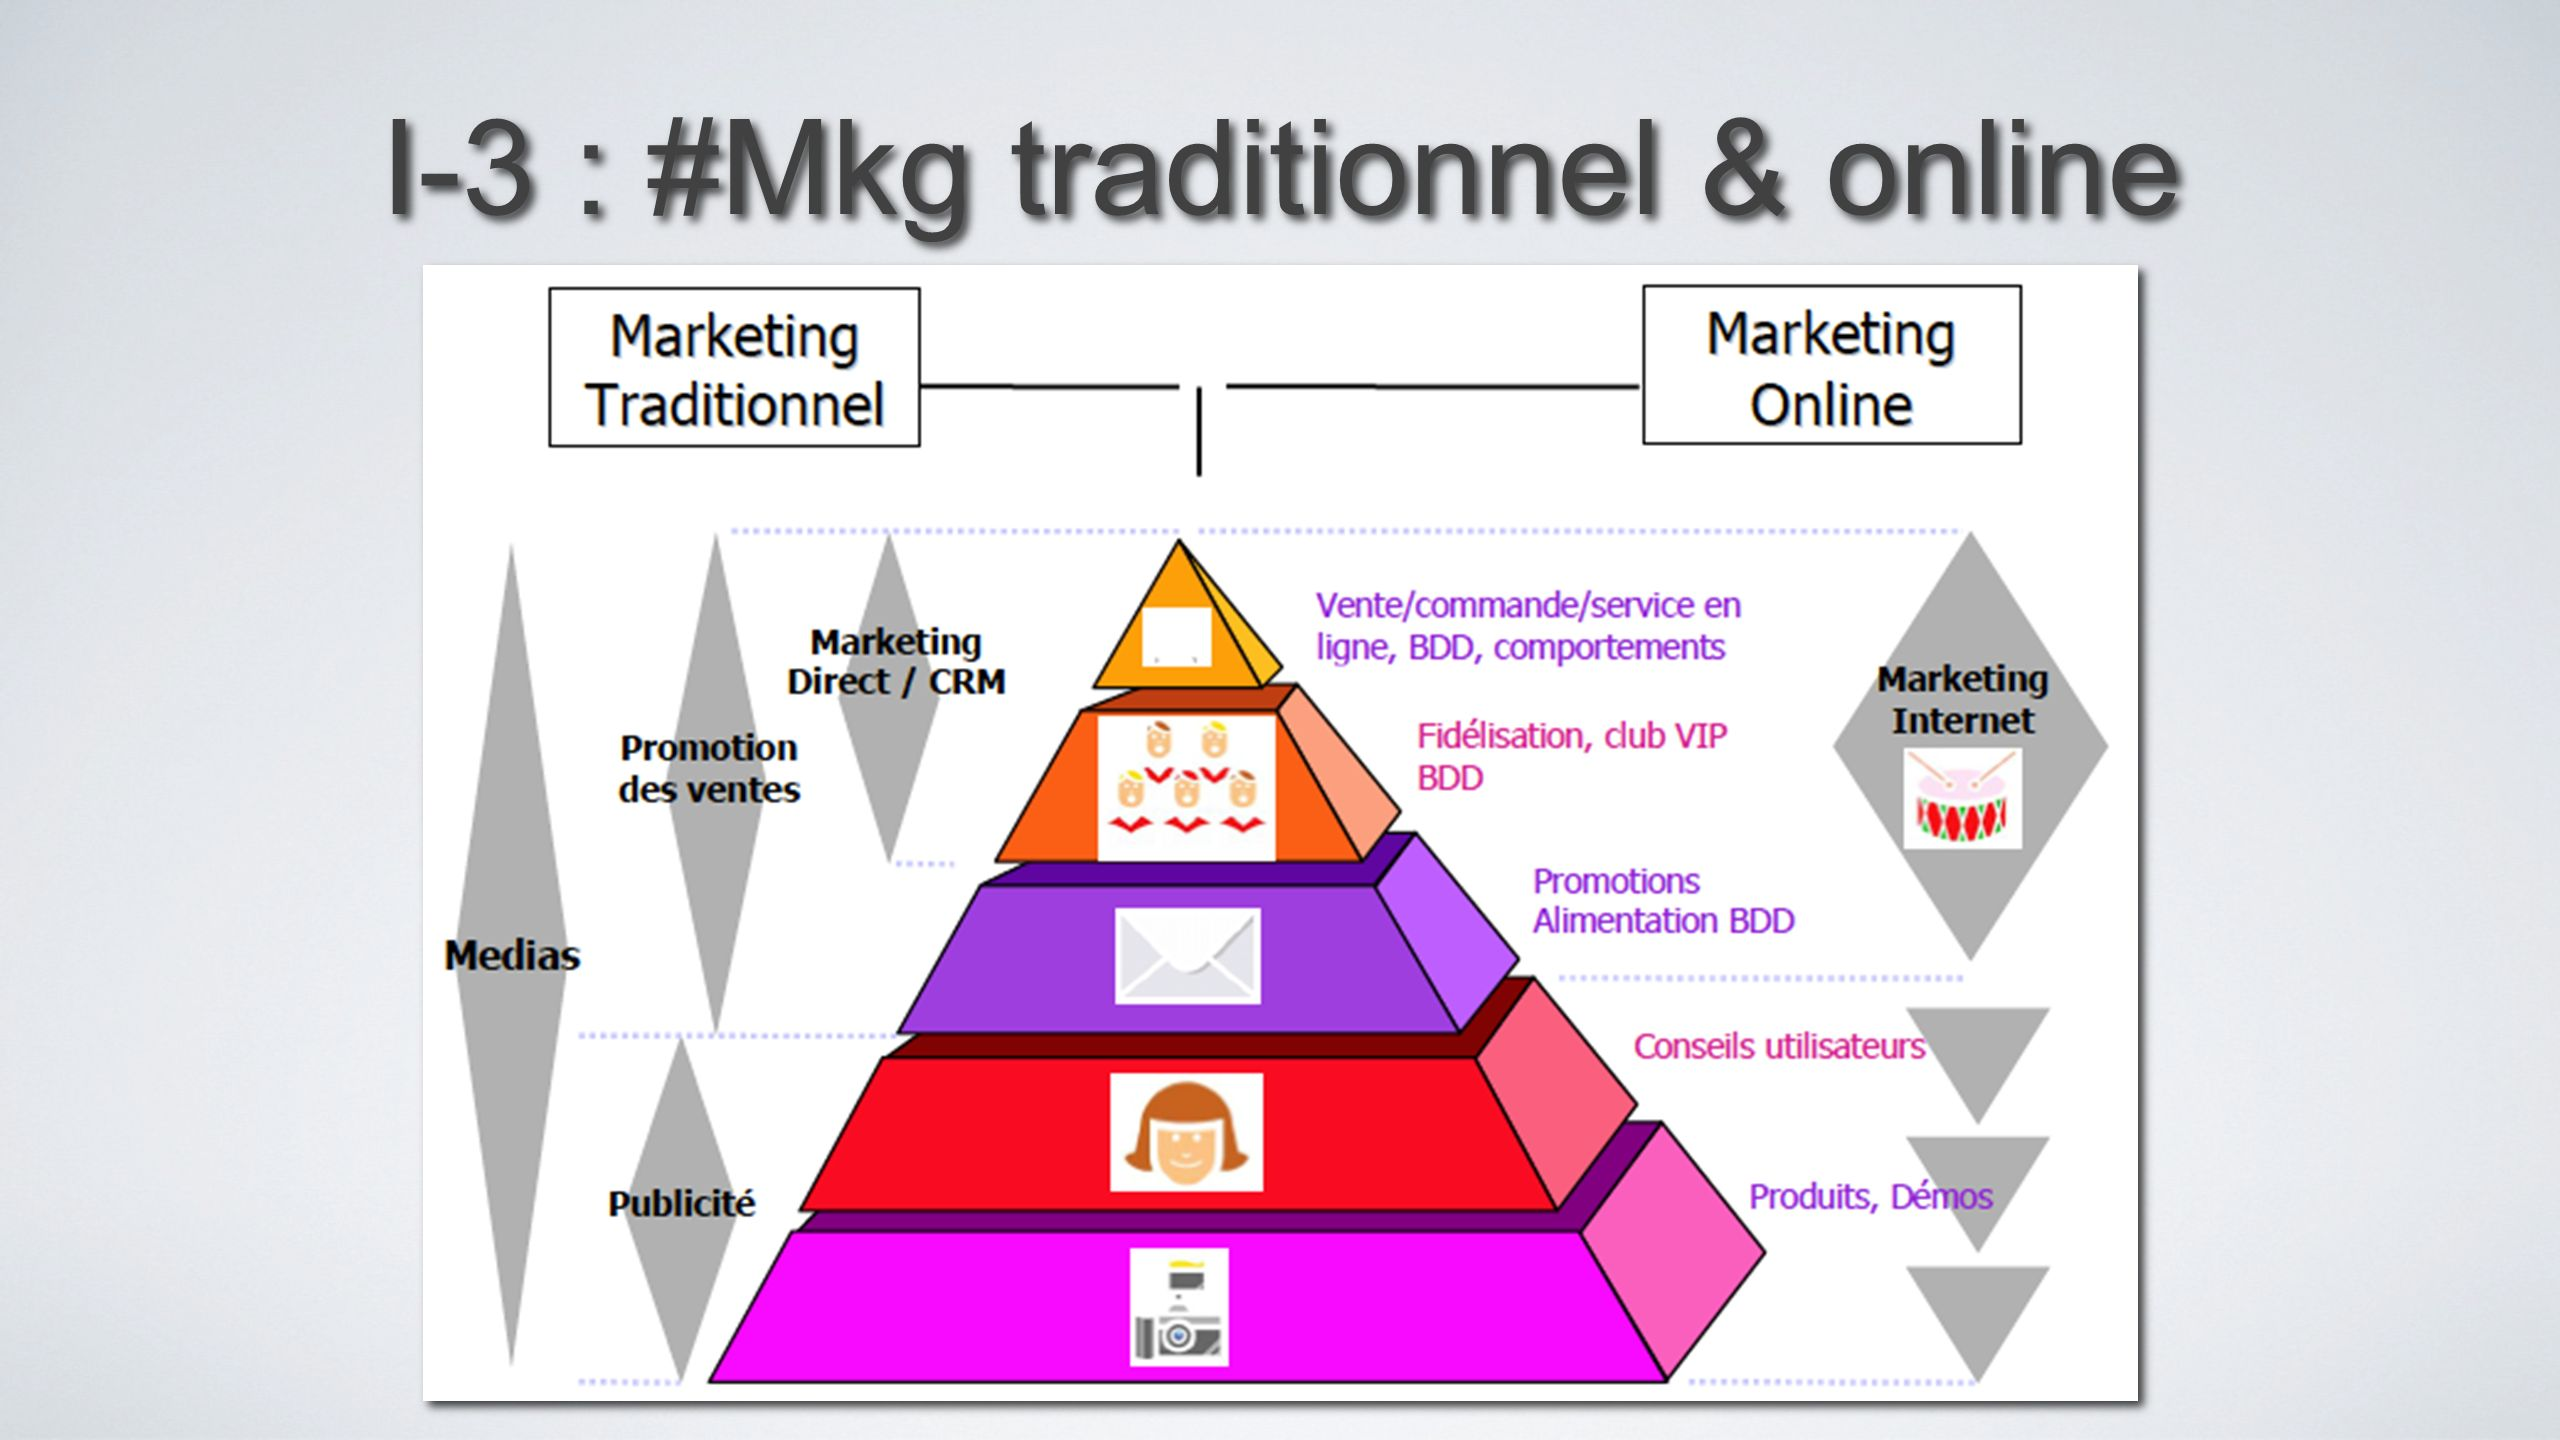 I-3 : #Mkg traditionnel & online